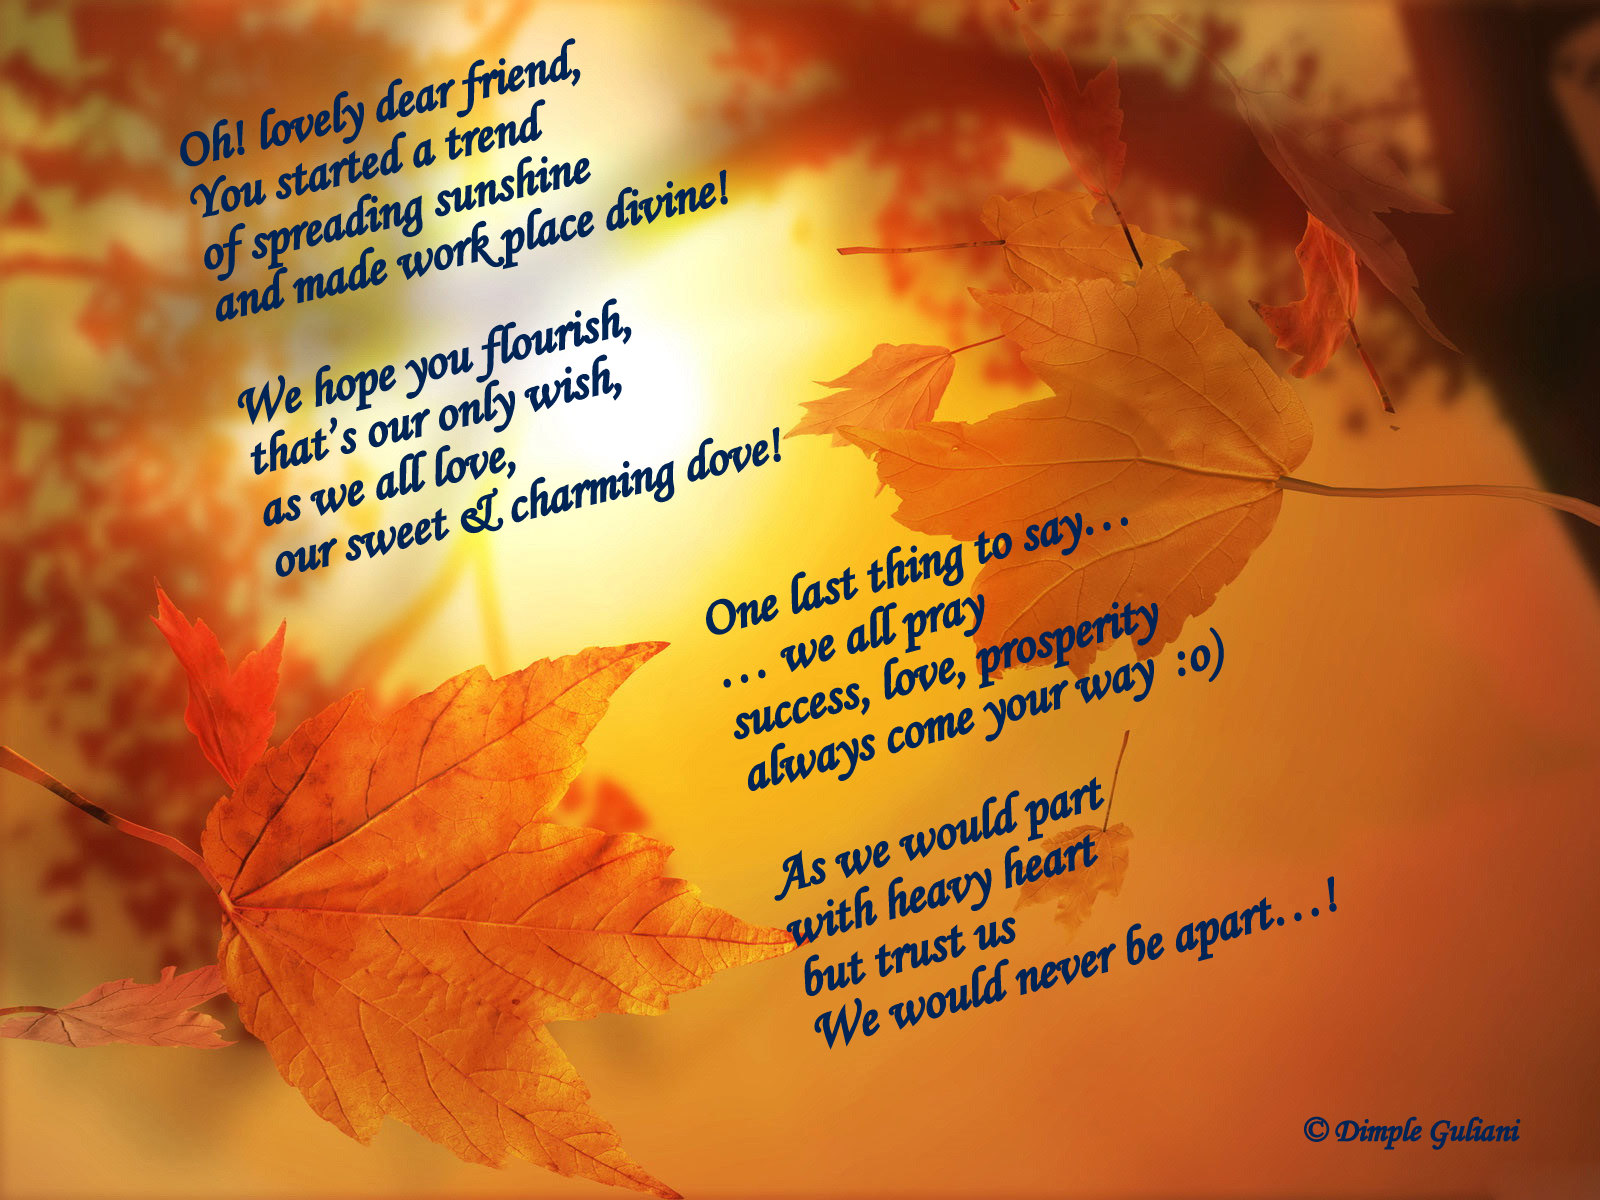 Fall Of Quotations Wallpapers Friendship Poems Wallpapers Free Wallpapers